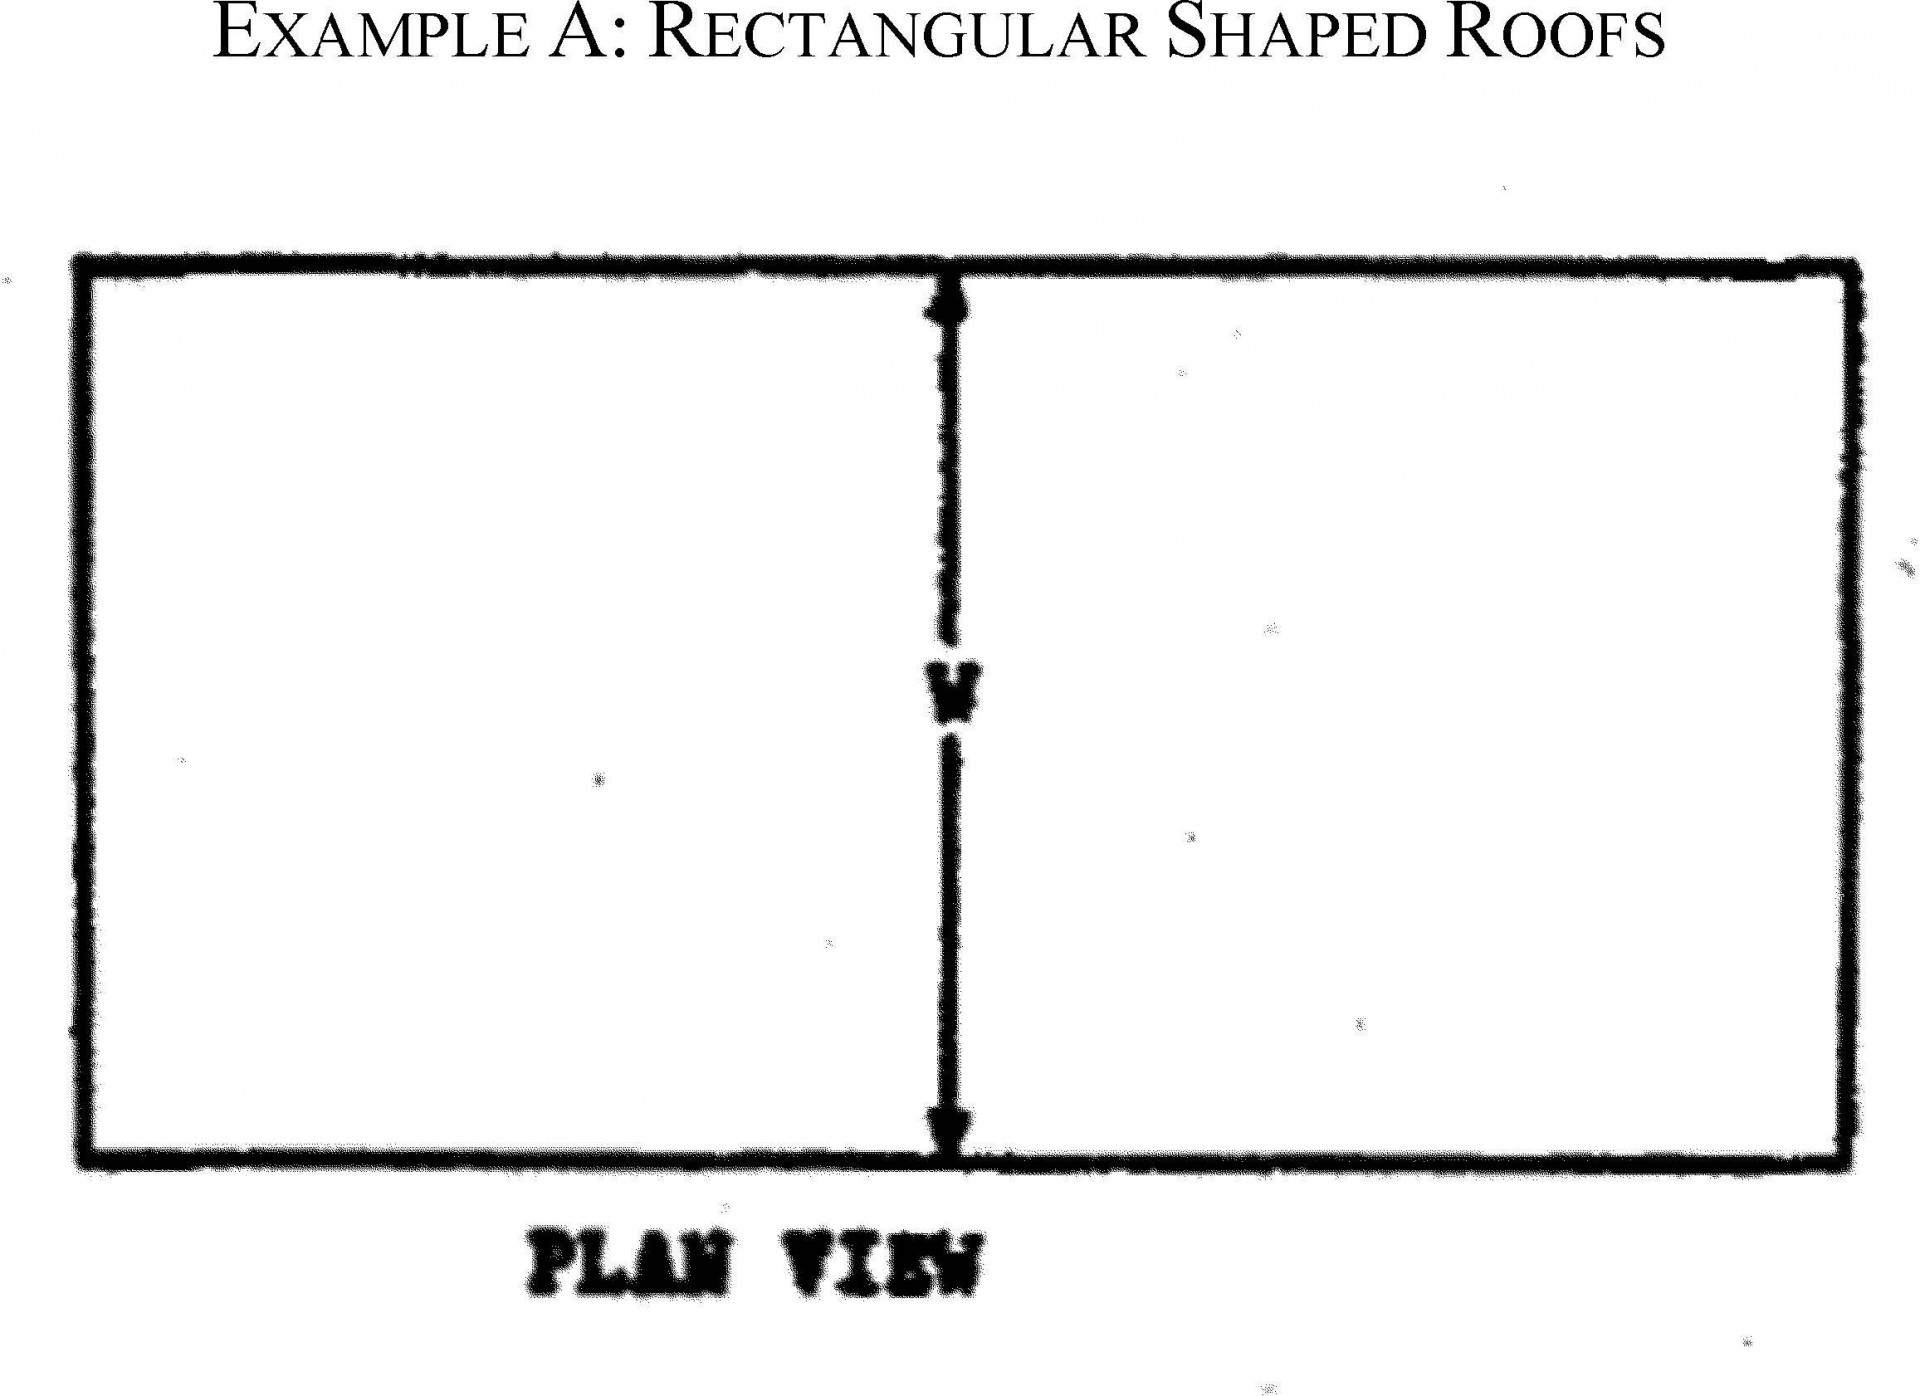 004 Archaicawful Site Specific Safety Plan Template For Roofing Design 1920